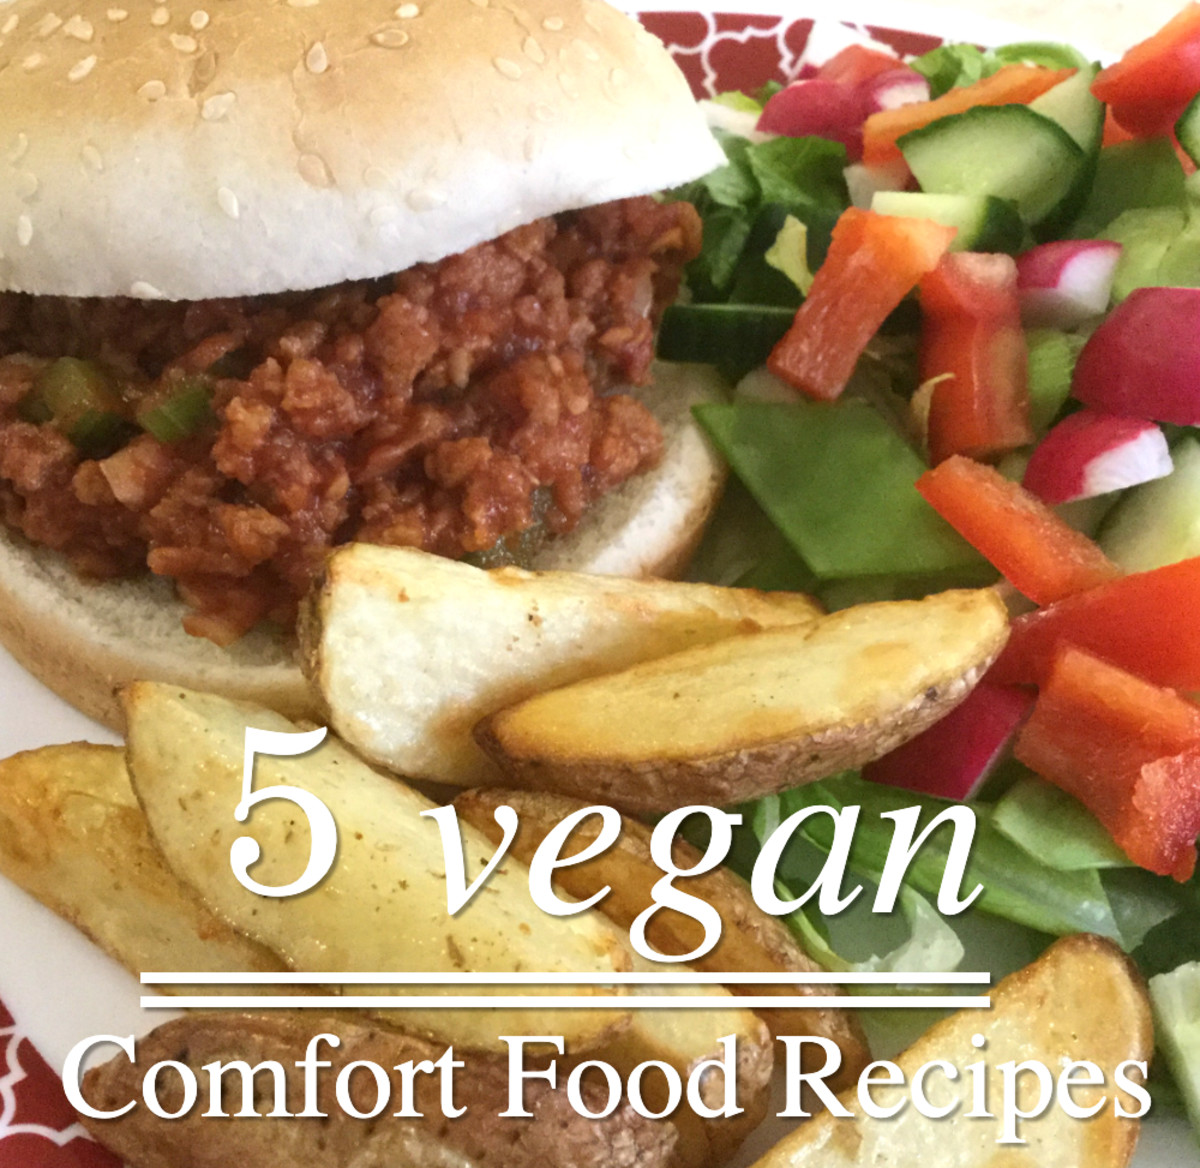 Learn how to make the vegan Sloppy Joe's shown in this photo, along with some other comfort foods.